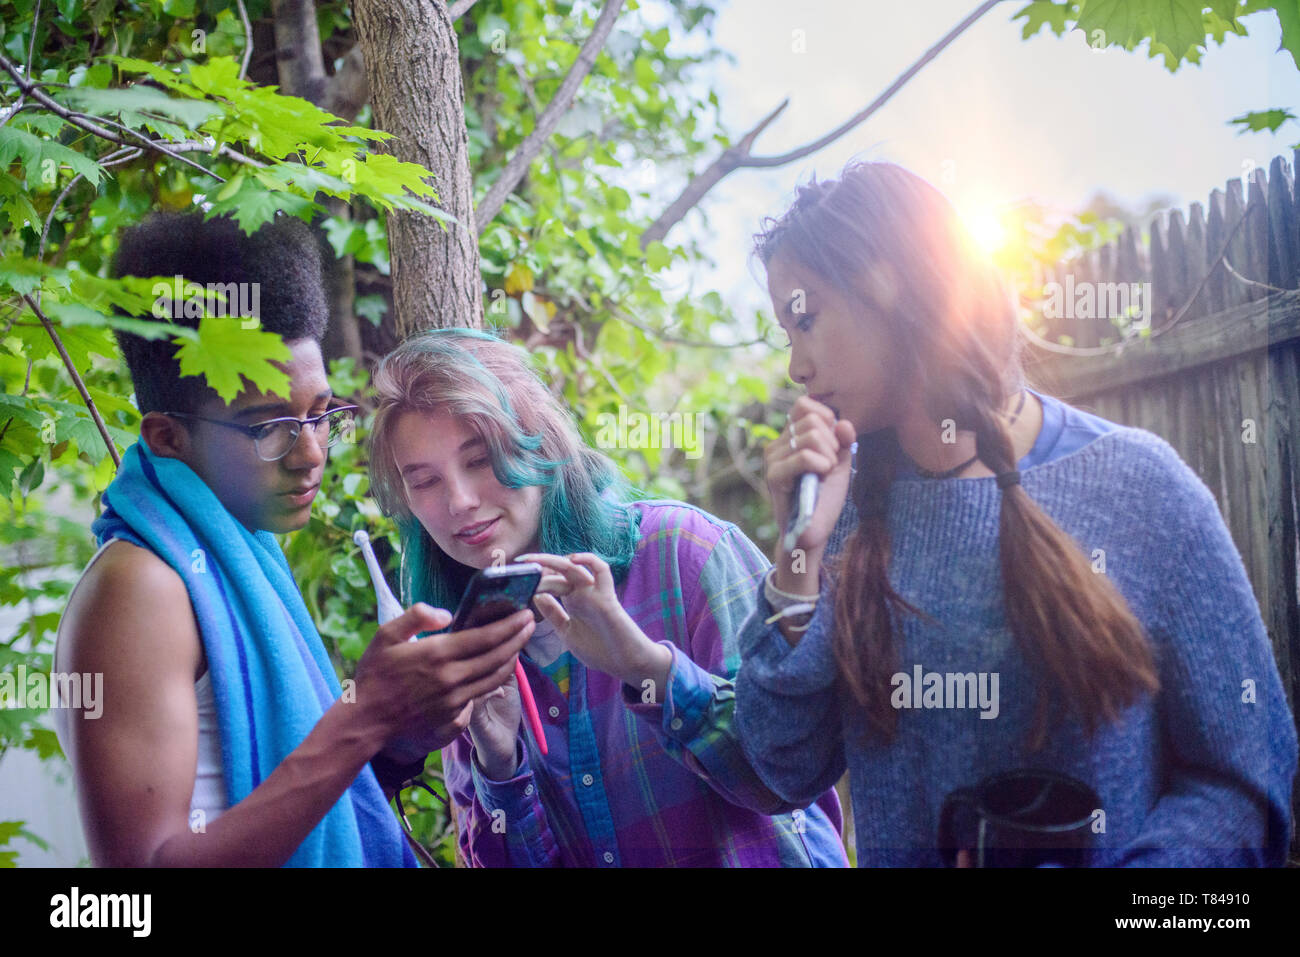 Three male and female teenagers in garden looking at smartphone - Stock Image